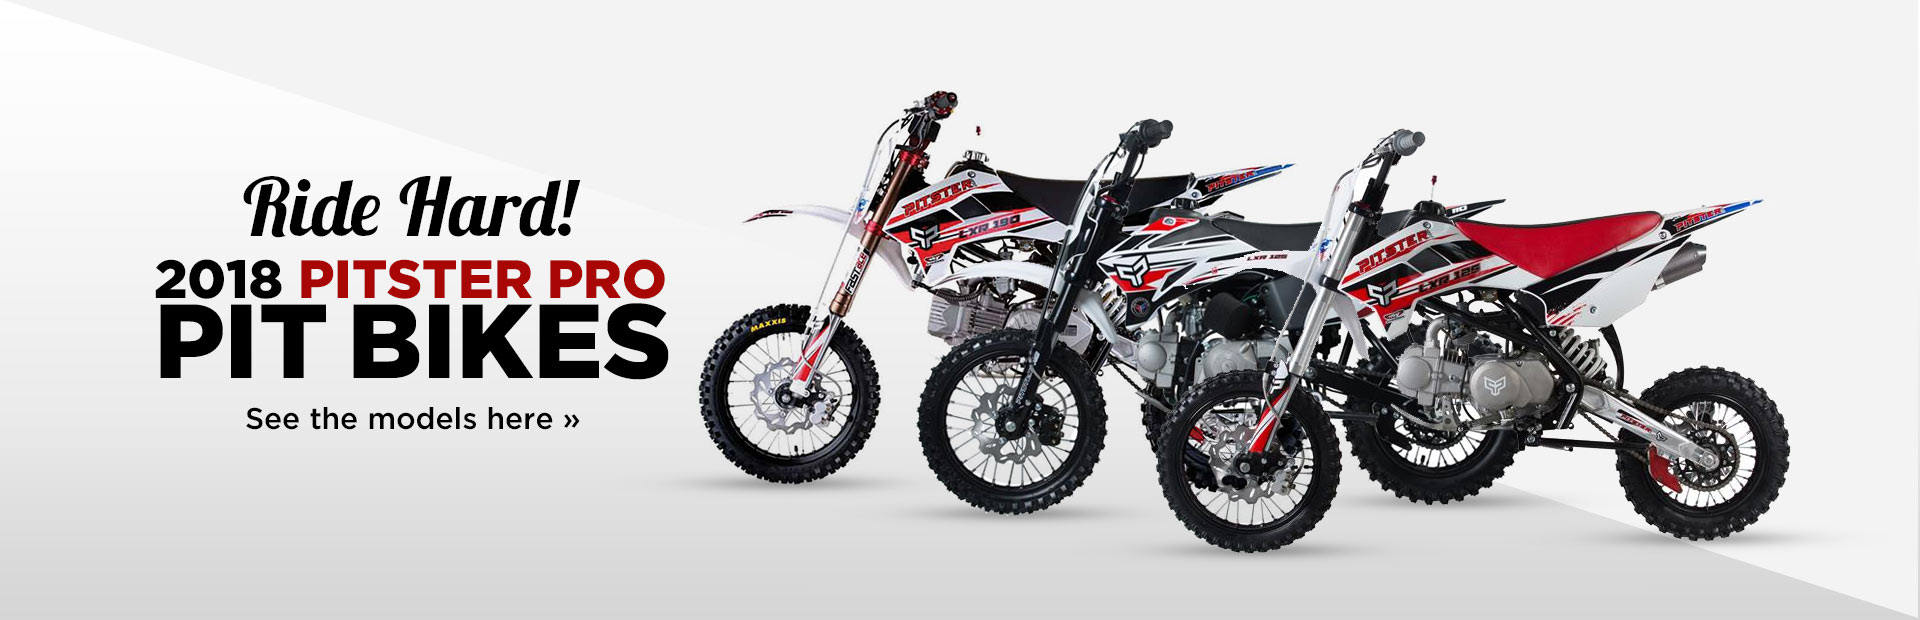 2018 Pitster Pro Pit Bikes: Click here to view the lineup.